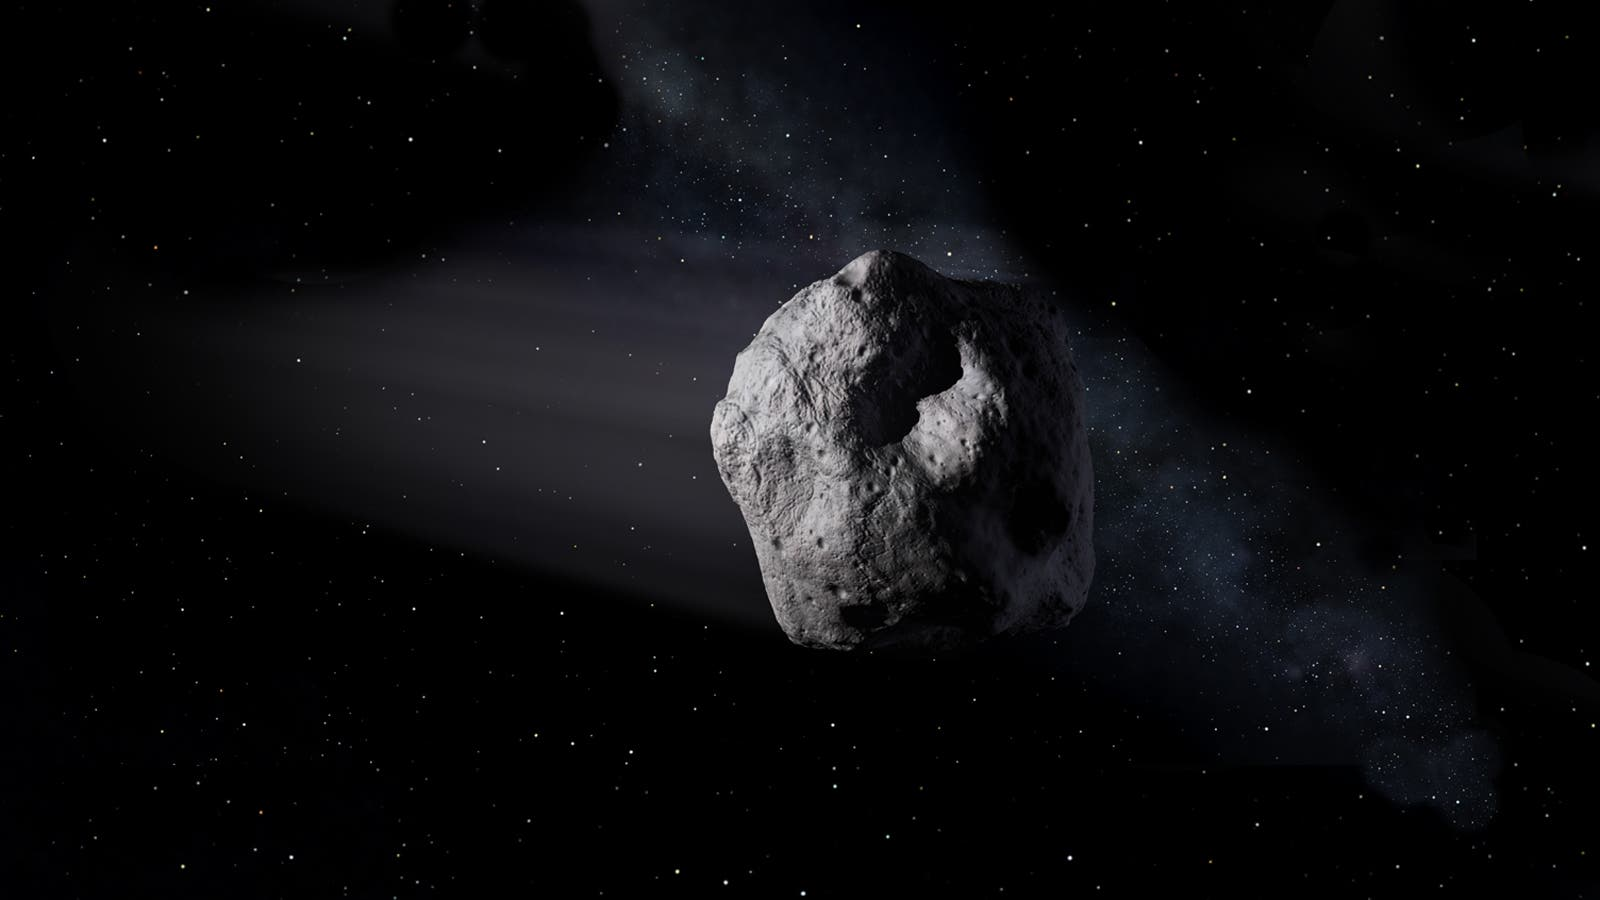 NASA reports asteroid to pass close to Earth tomorrow, might 'airburst'